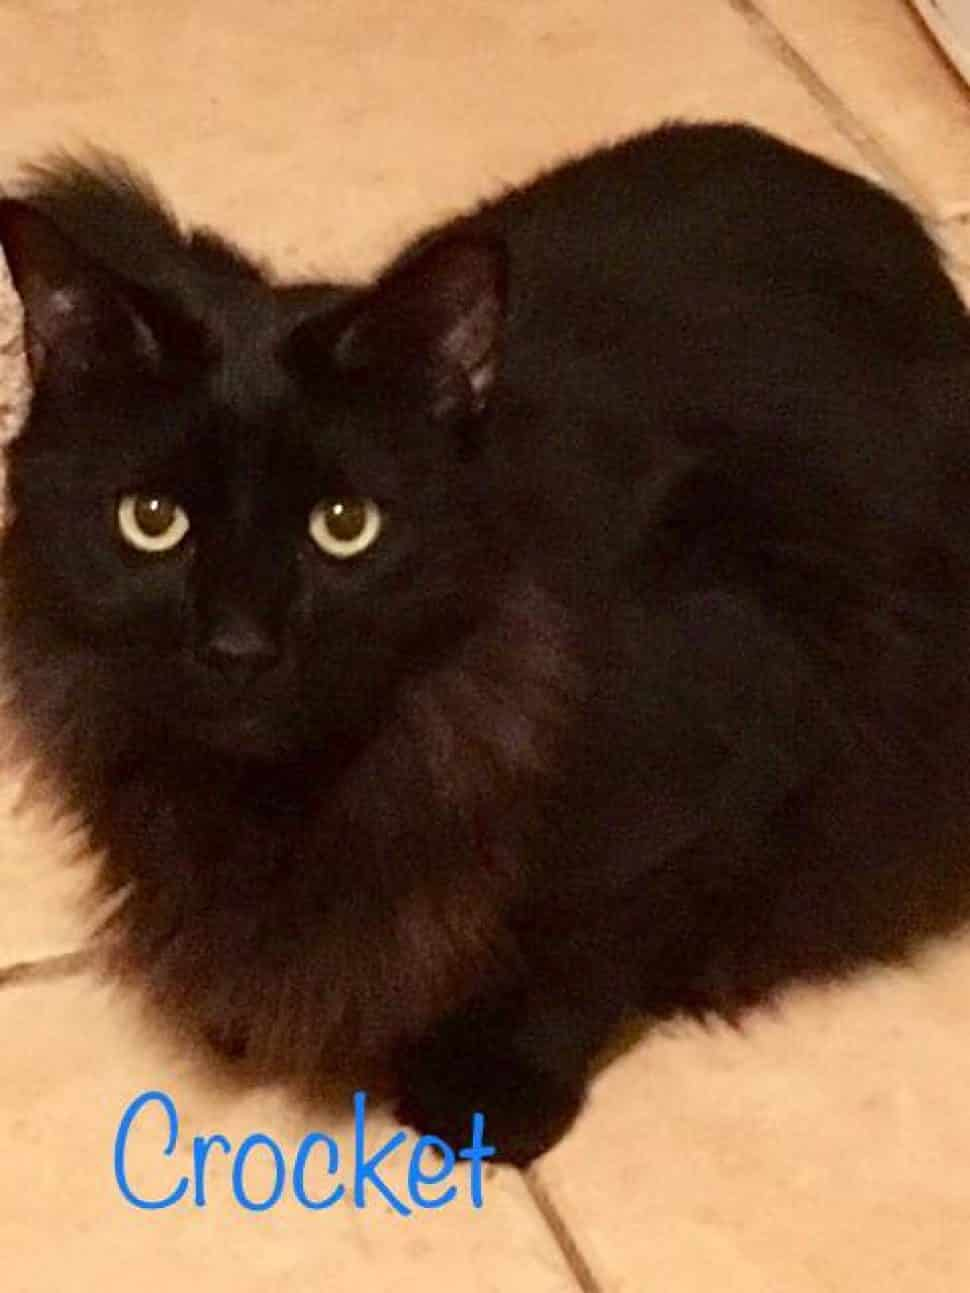 Large mediumhair black cat with orange eyes sits in meatloaf position